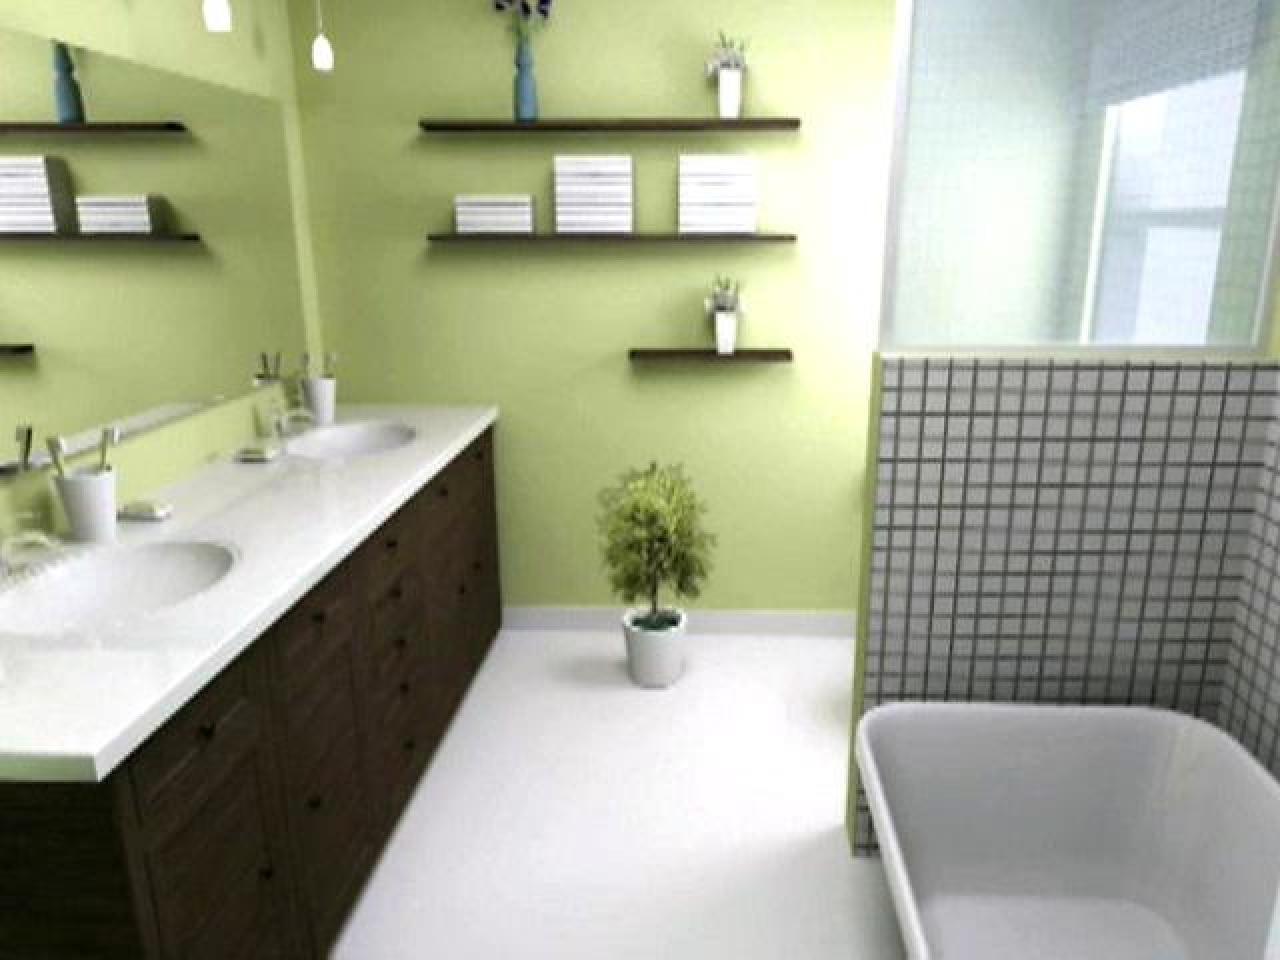 An Easy Checklist For Organizing Your Bathroom The River Club,Mint And Lavender Color Scheme